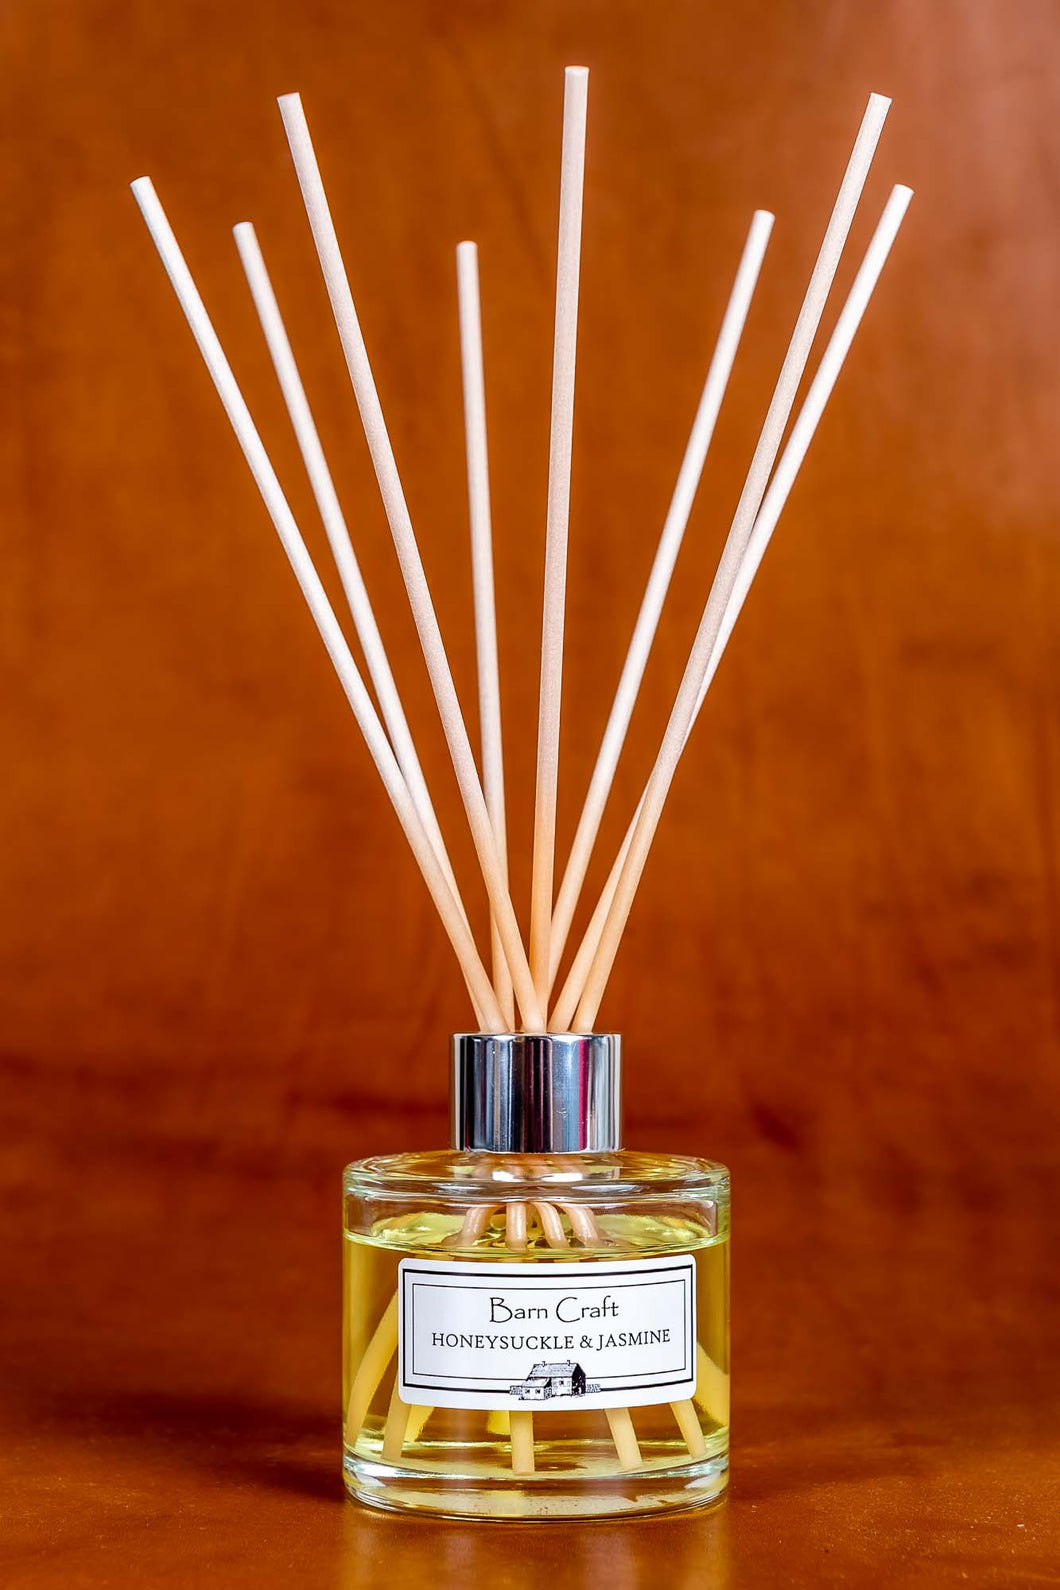 Honeysuckle & Jasmine reed diffuser